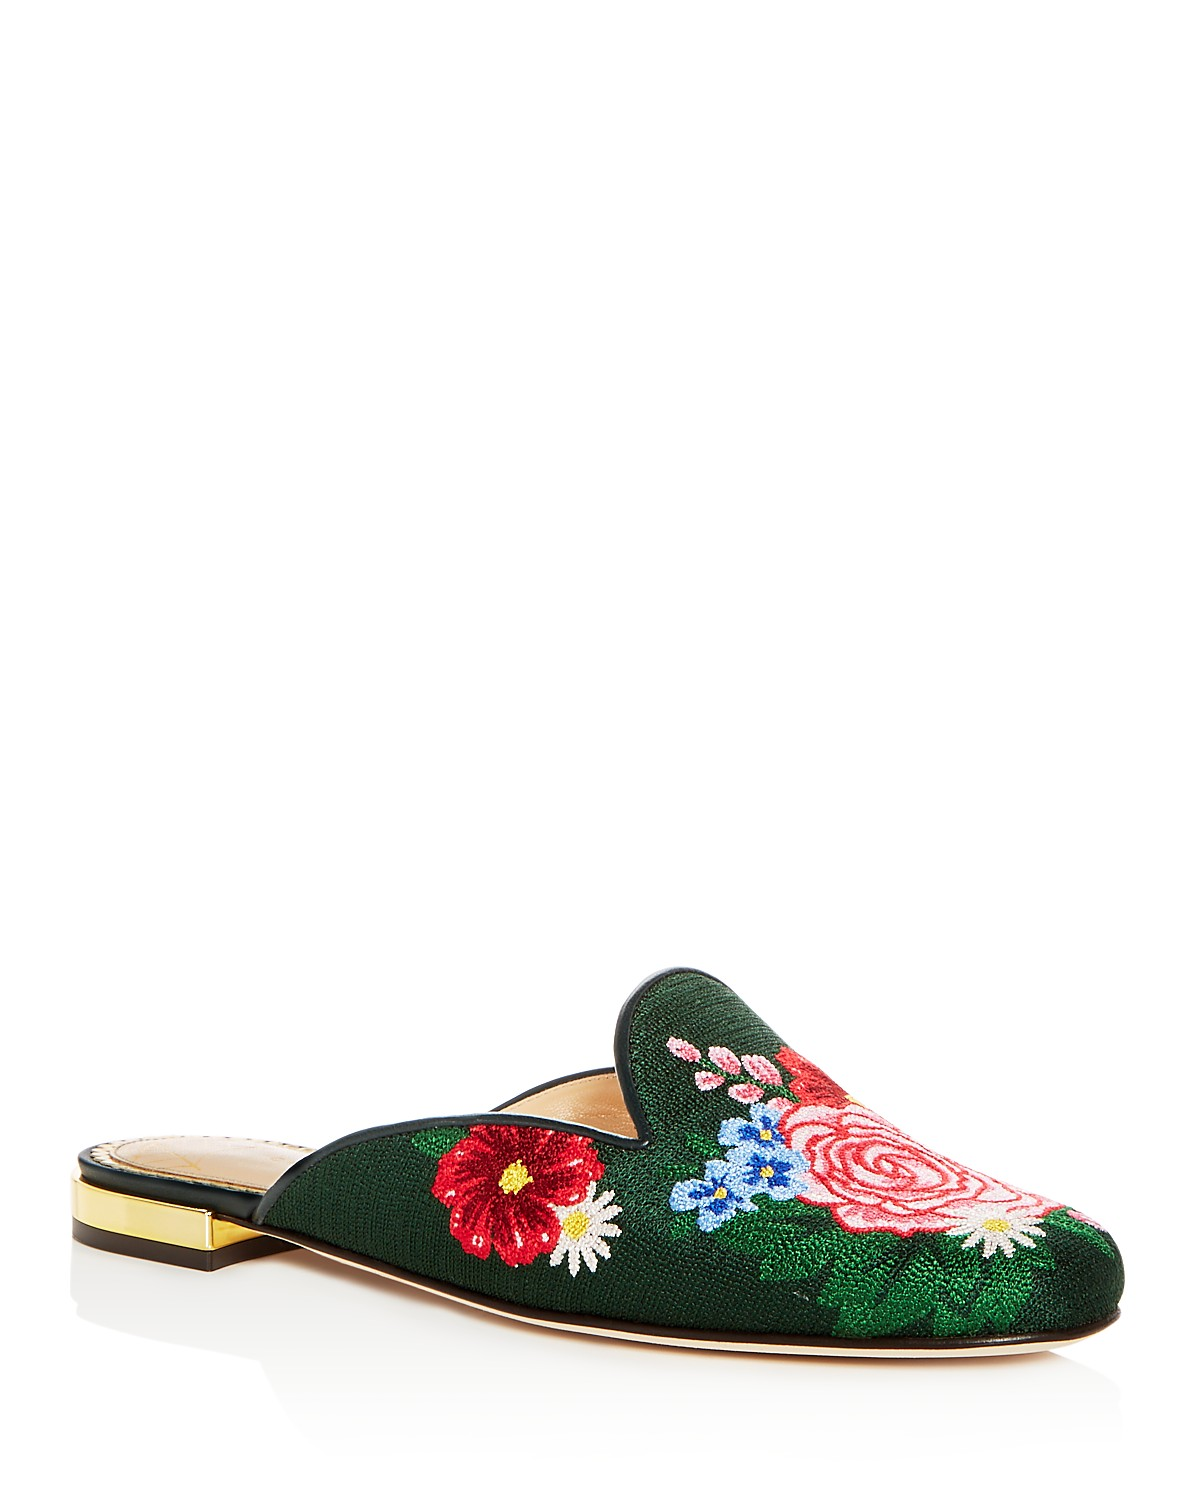 Charlotte Olympia Women's Rose Garden Embroidered Mules s7h3dVMd